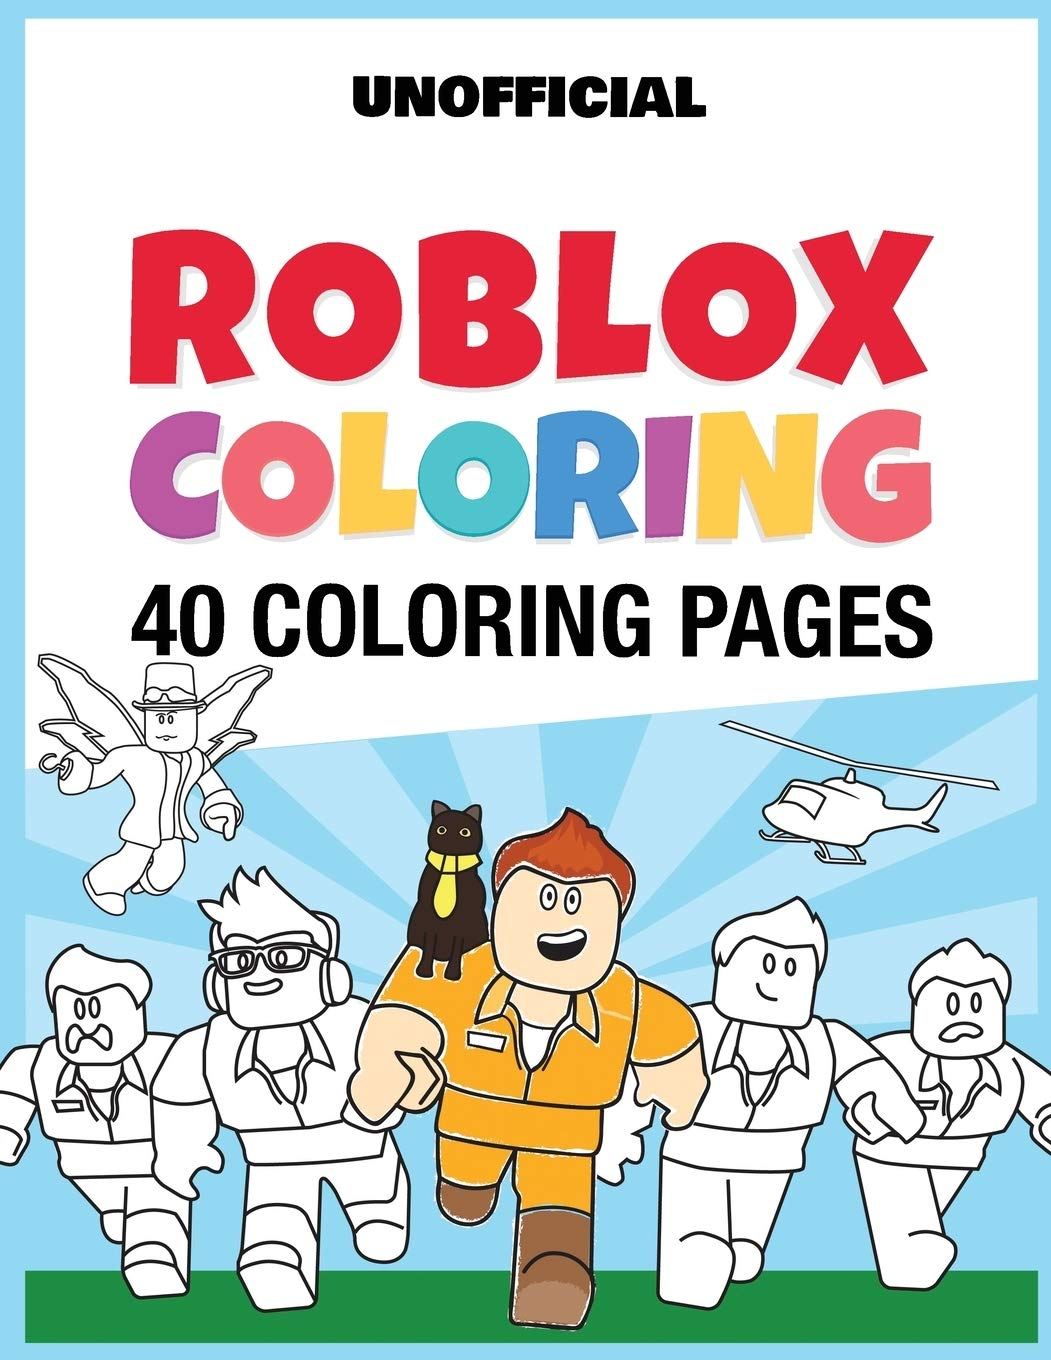 Roblox roblox-coloring-page-14 coloring pages | 1360x1051